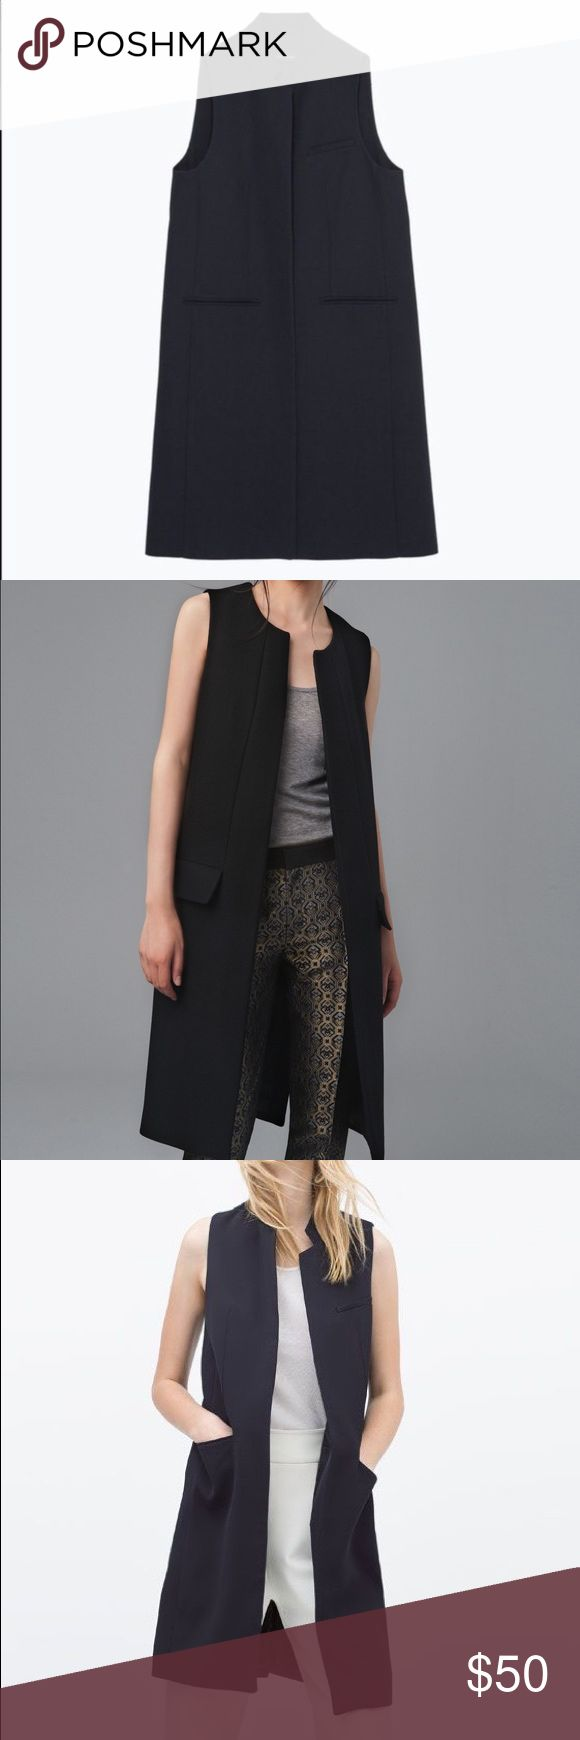 Zara black waistcoat Gently worn, black waistcoat. More like for fall, warm. Open to offers. Can be worn by s and m size Zara Jackets & Coats